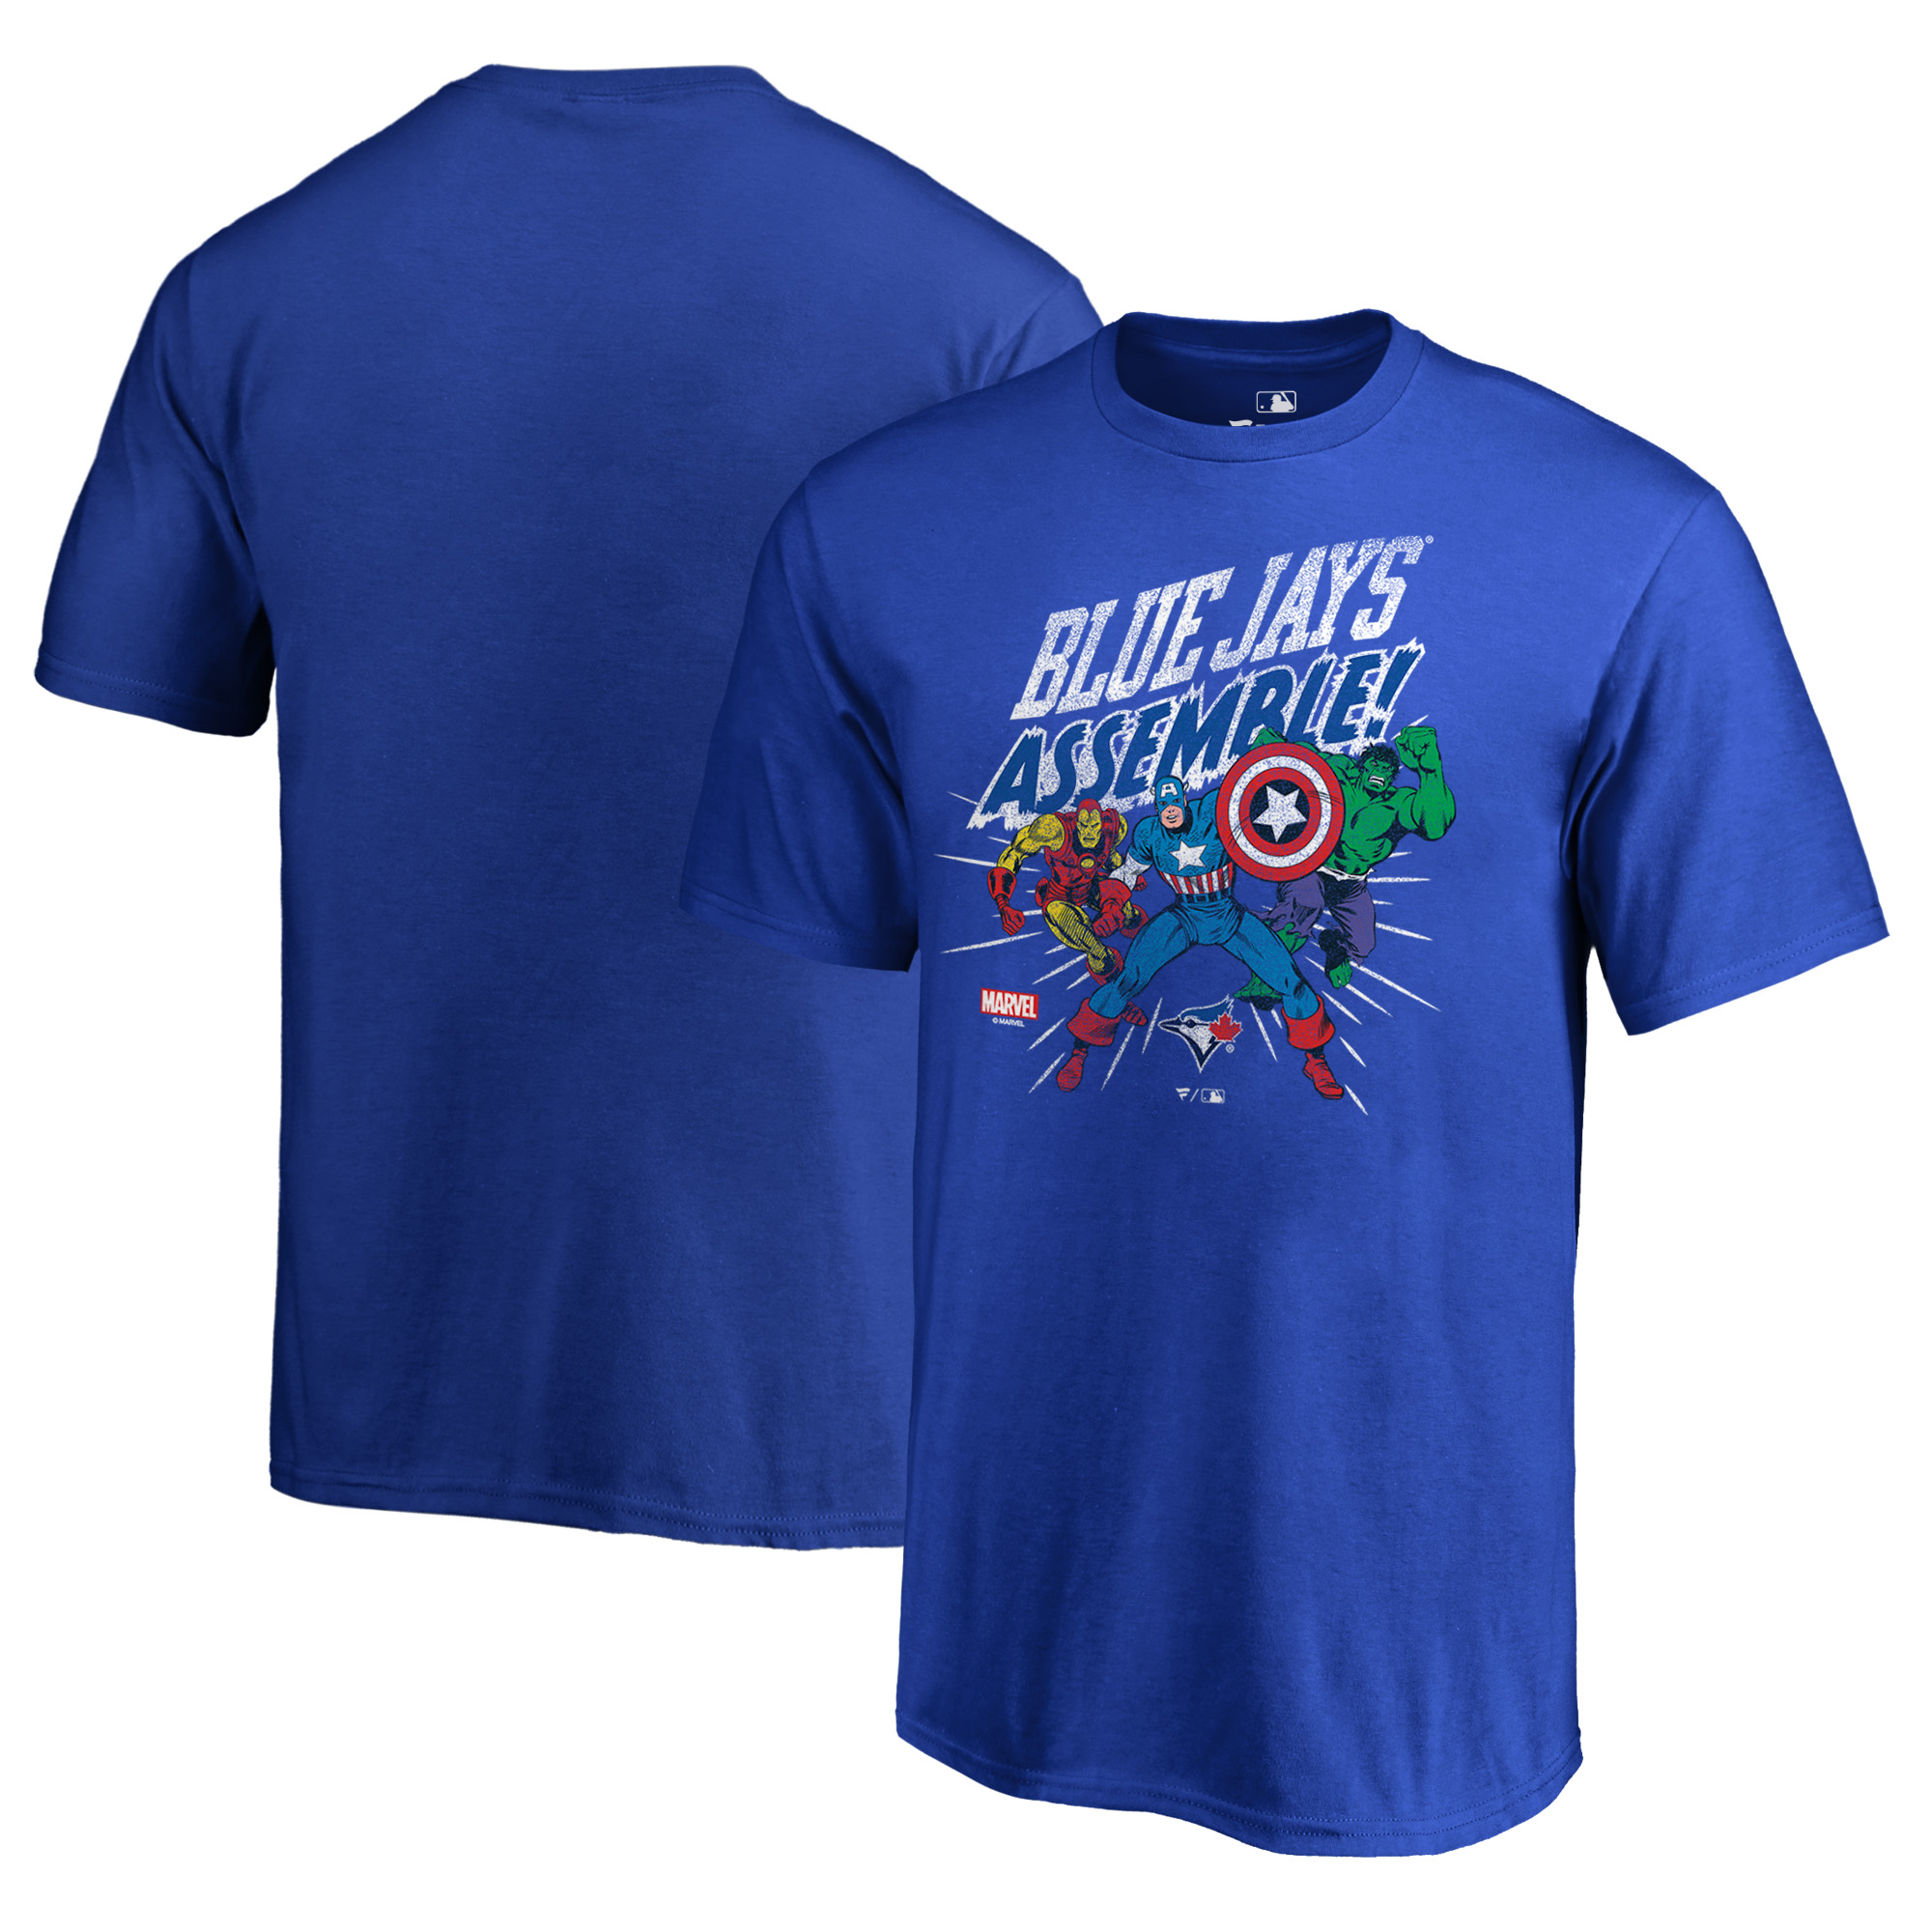 Toronto Blue Jays Fanatics Branded Youth Marvel Avengers Assemble T-Shirt - Royal